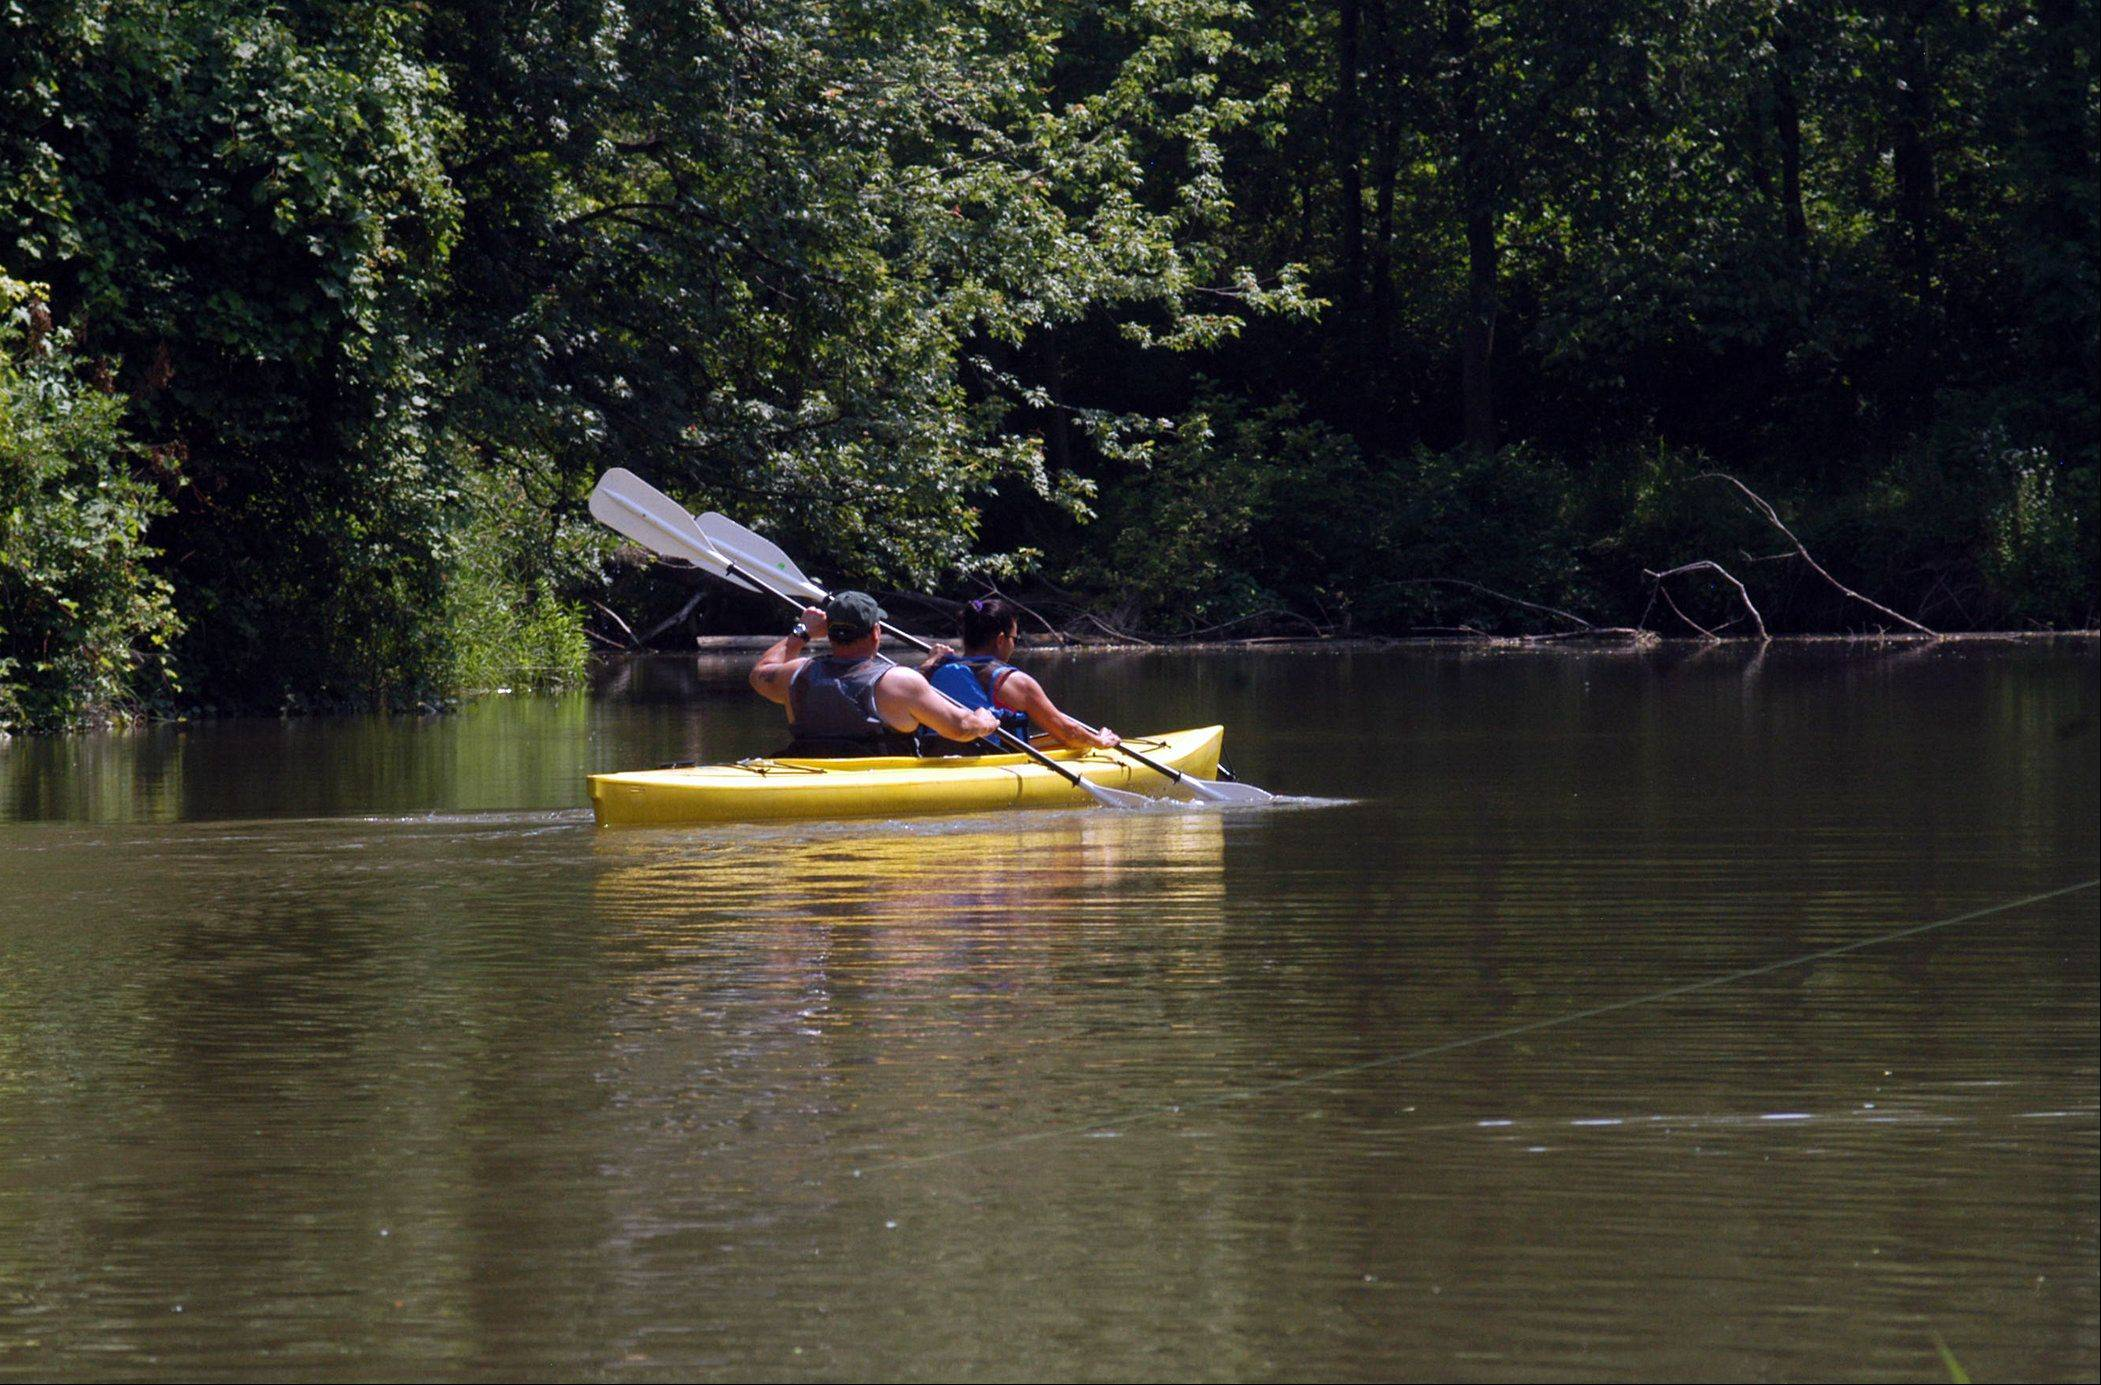 In warmer weather, visitors to Harbor Country in Michigan enjoy kayaking.